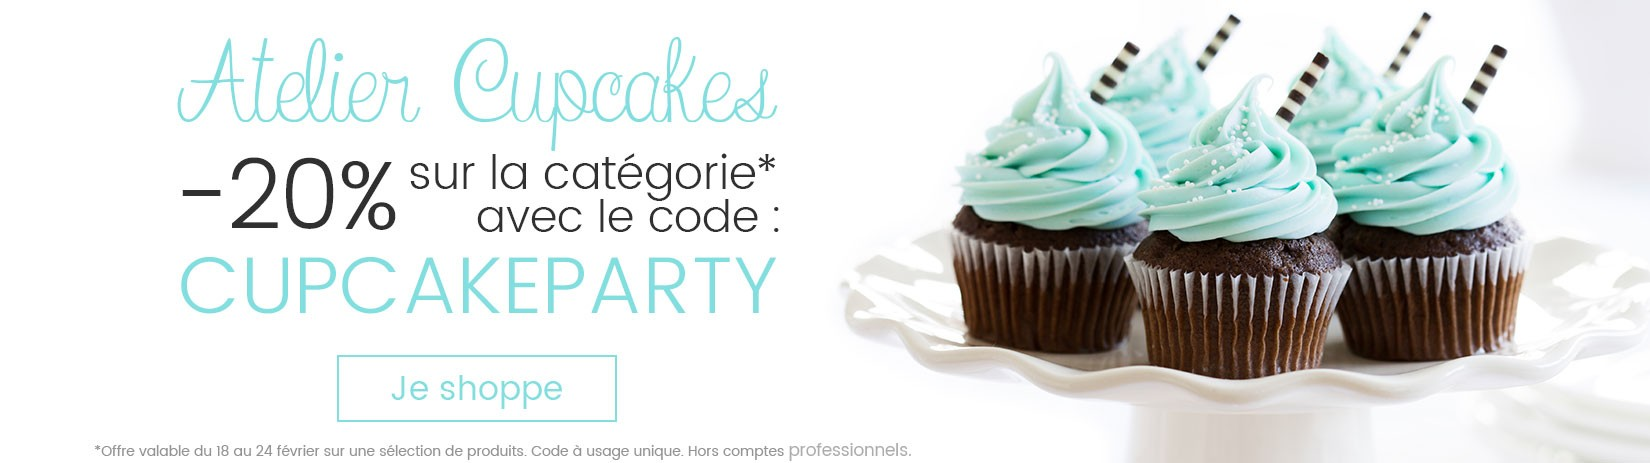 Offre cupcakes